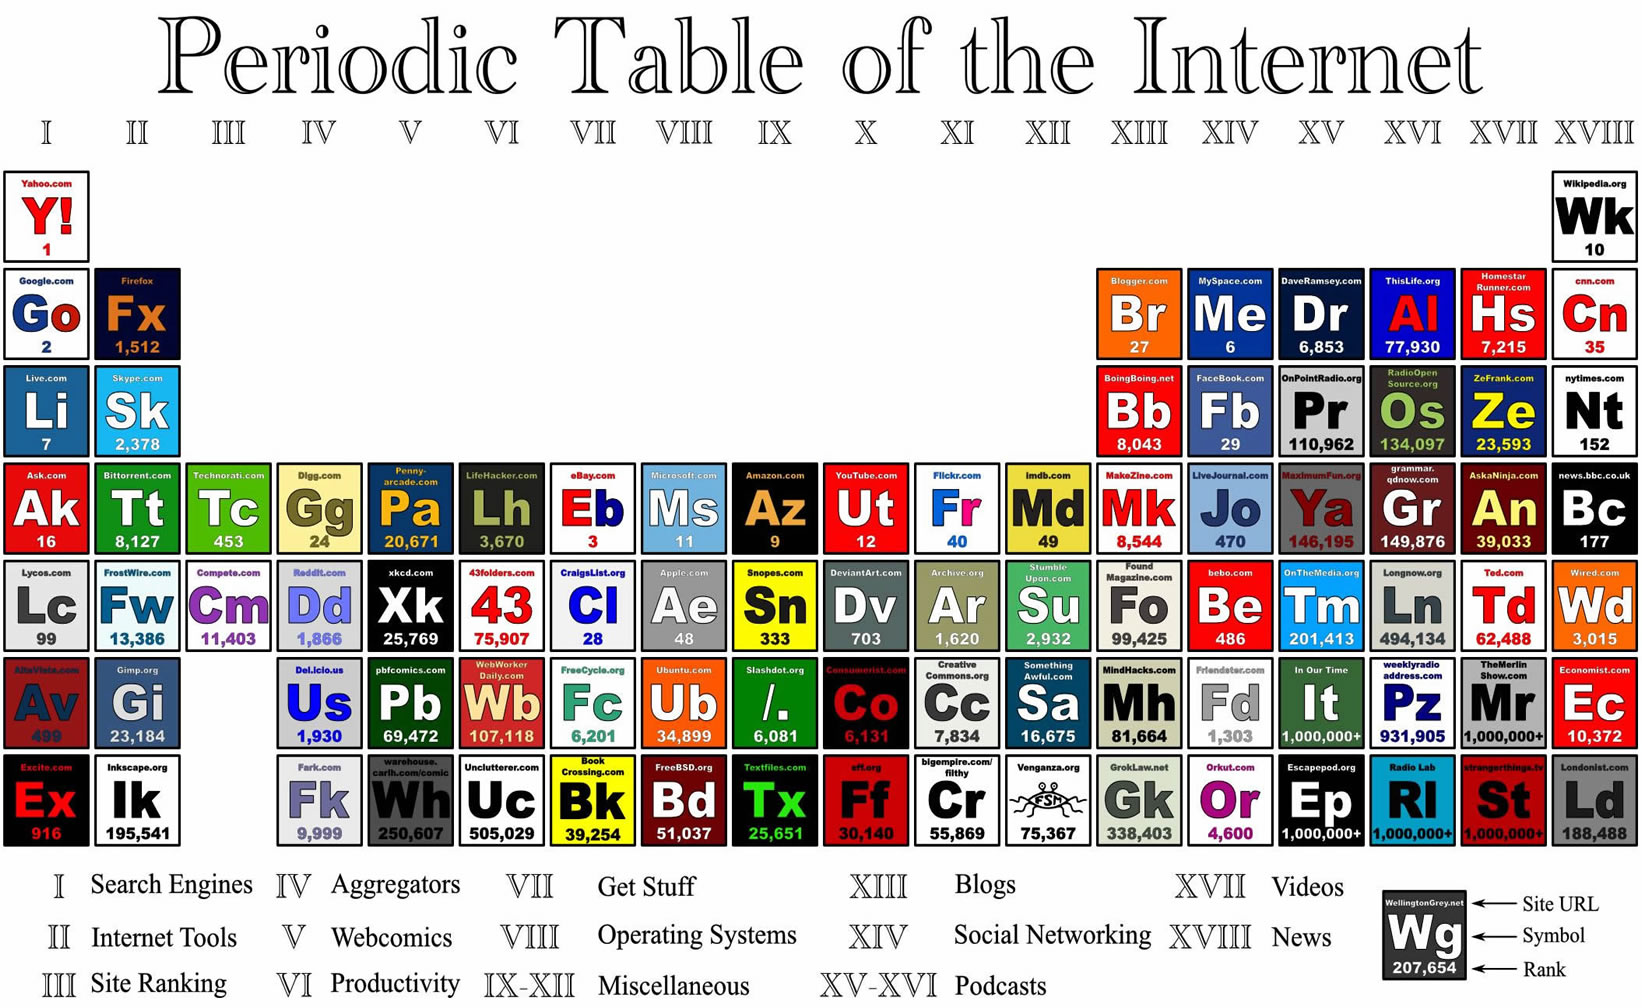 Periodic Table Of The Internet Puts Most Popular Websites